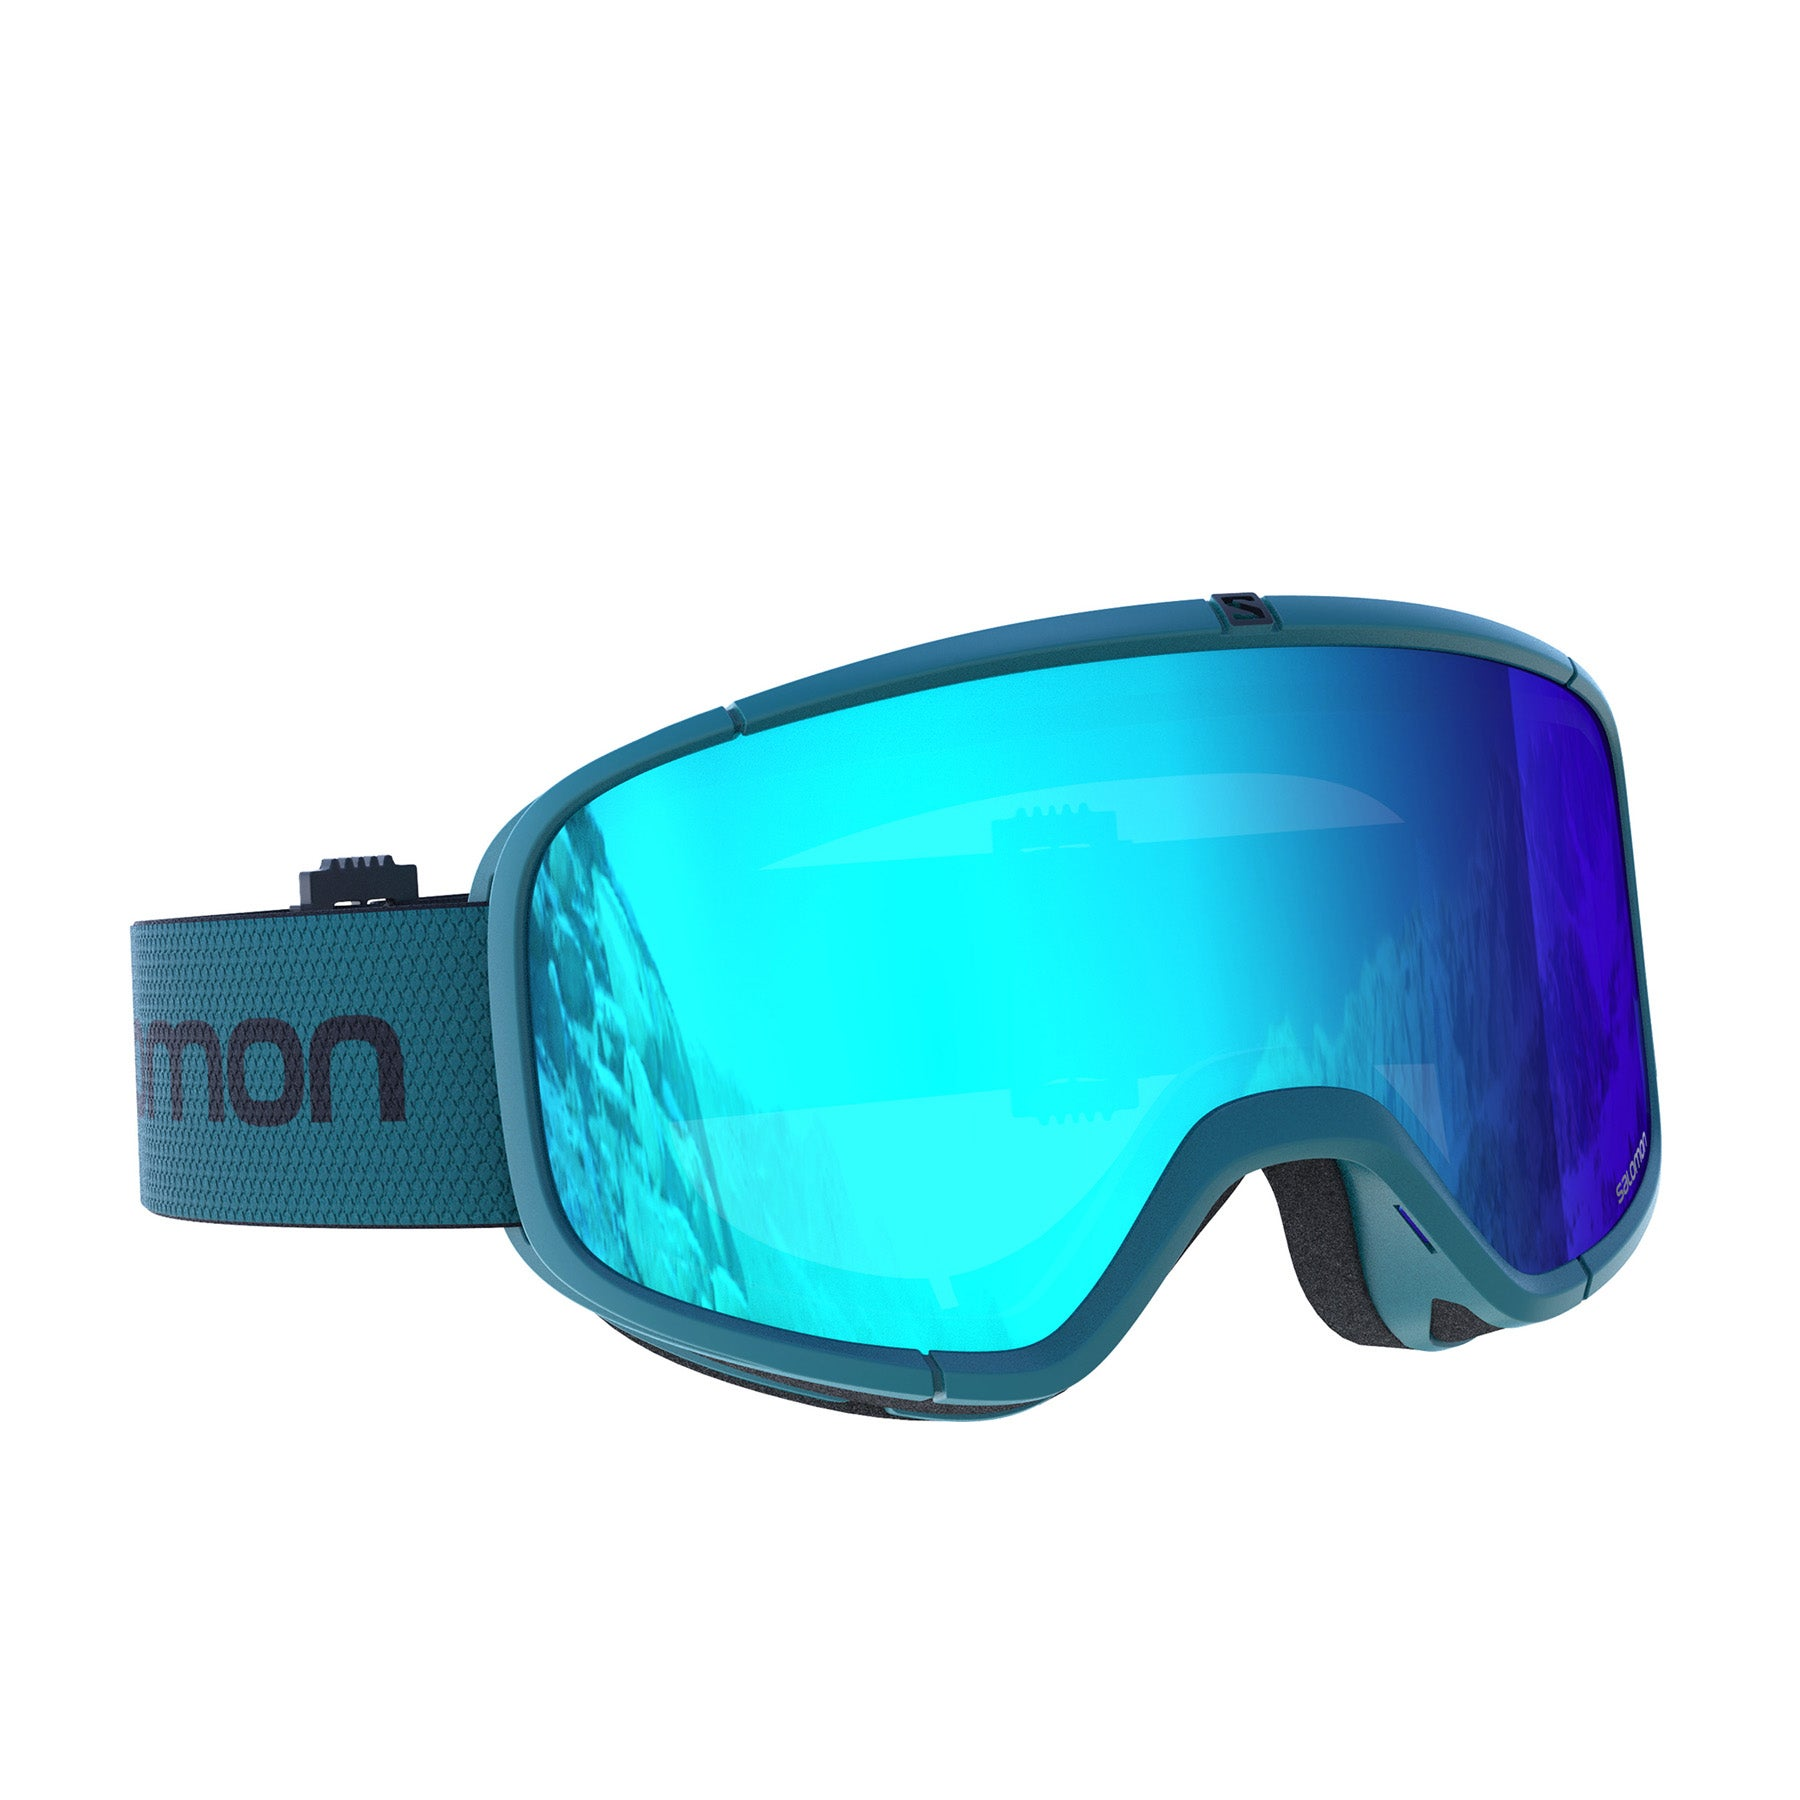 Salomon Four Seven Snow Goggles - Blue